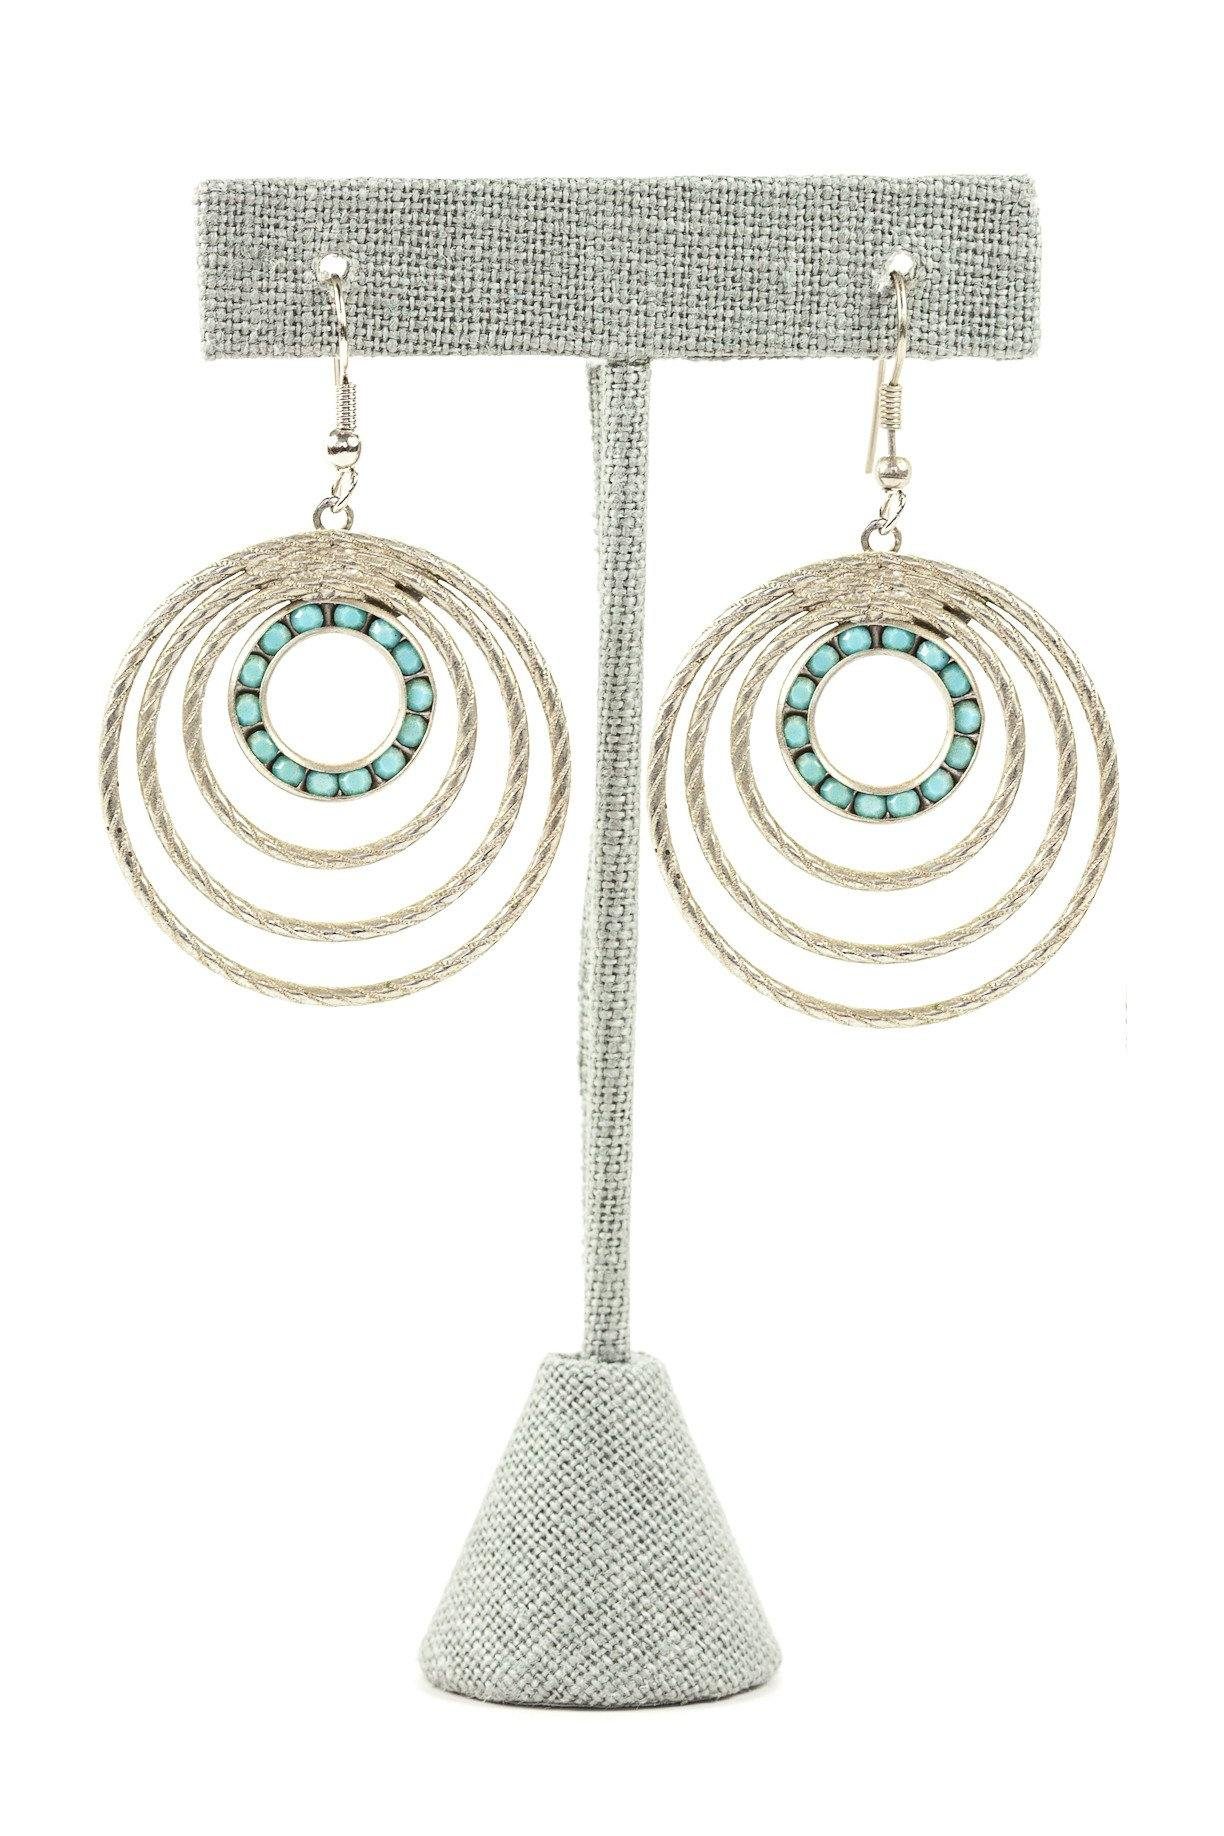 50's__Park Lane__Turquoise Drop Earrings